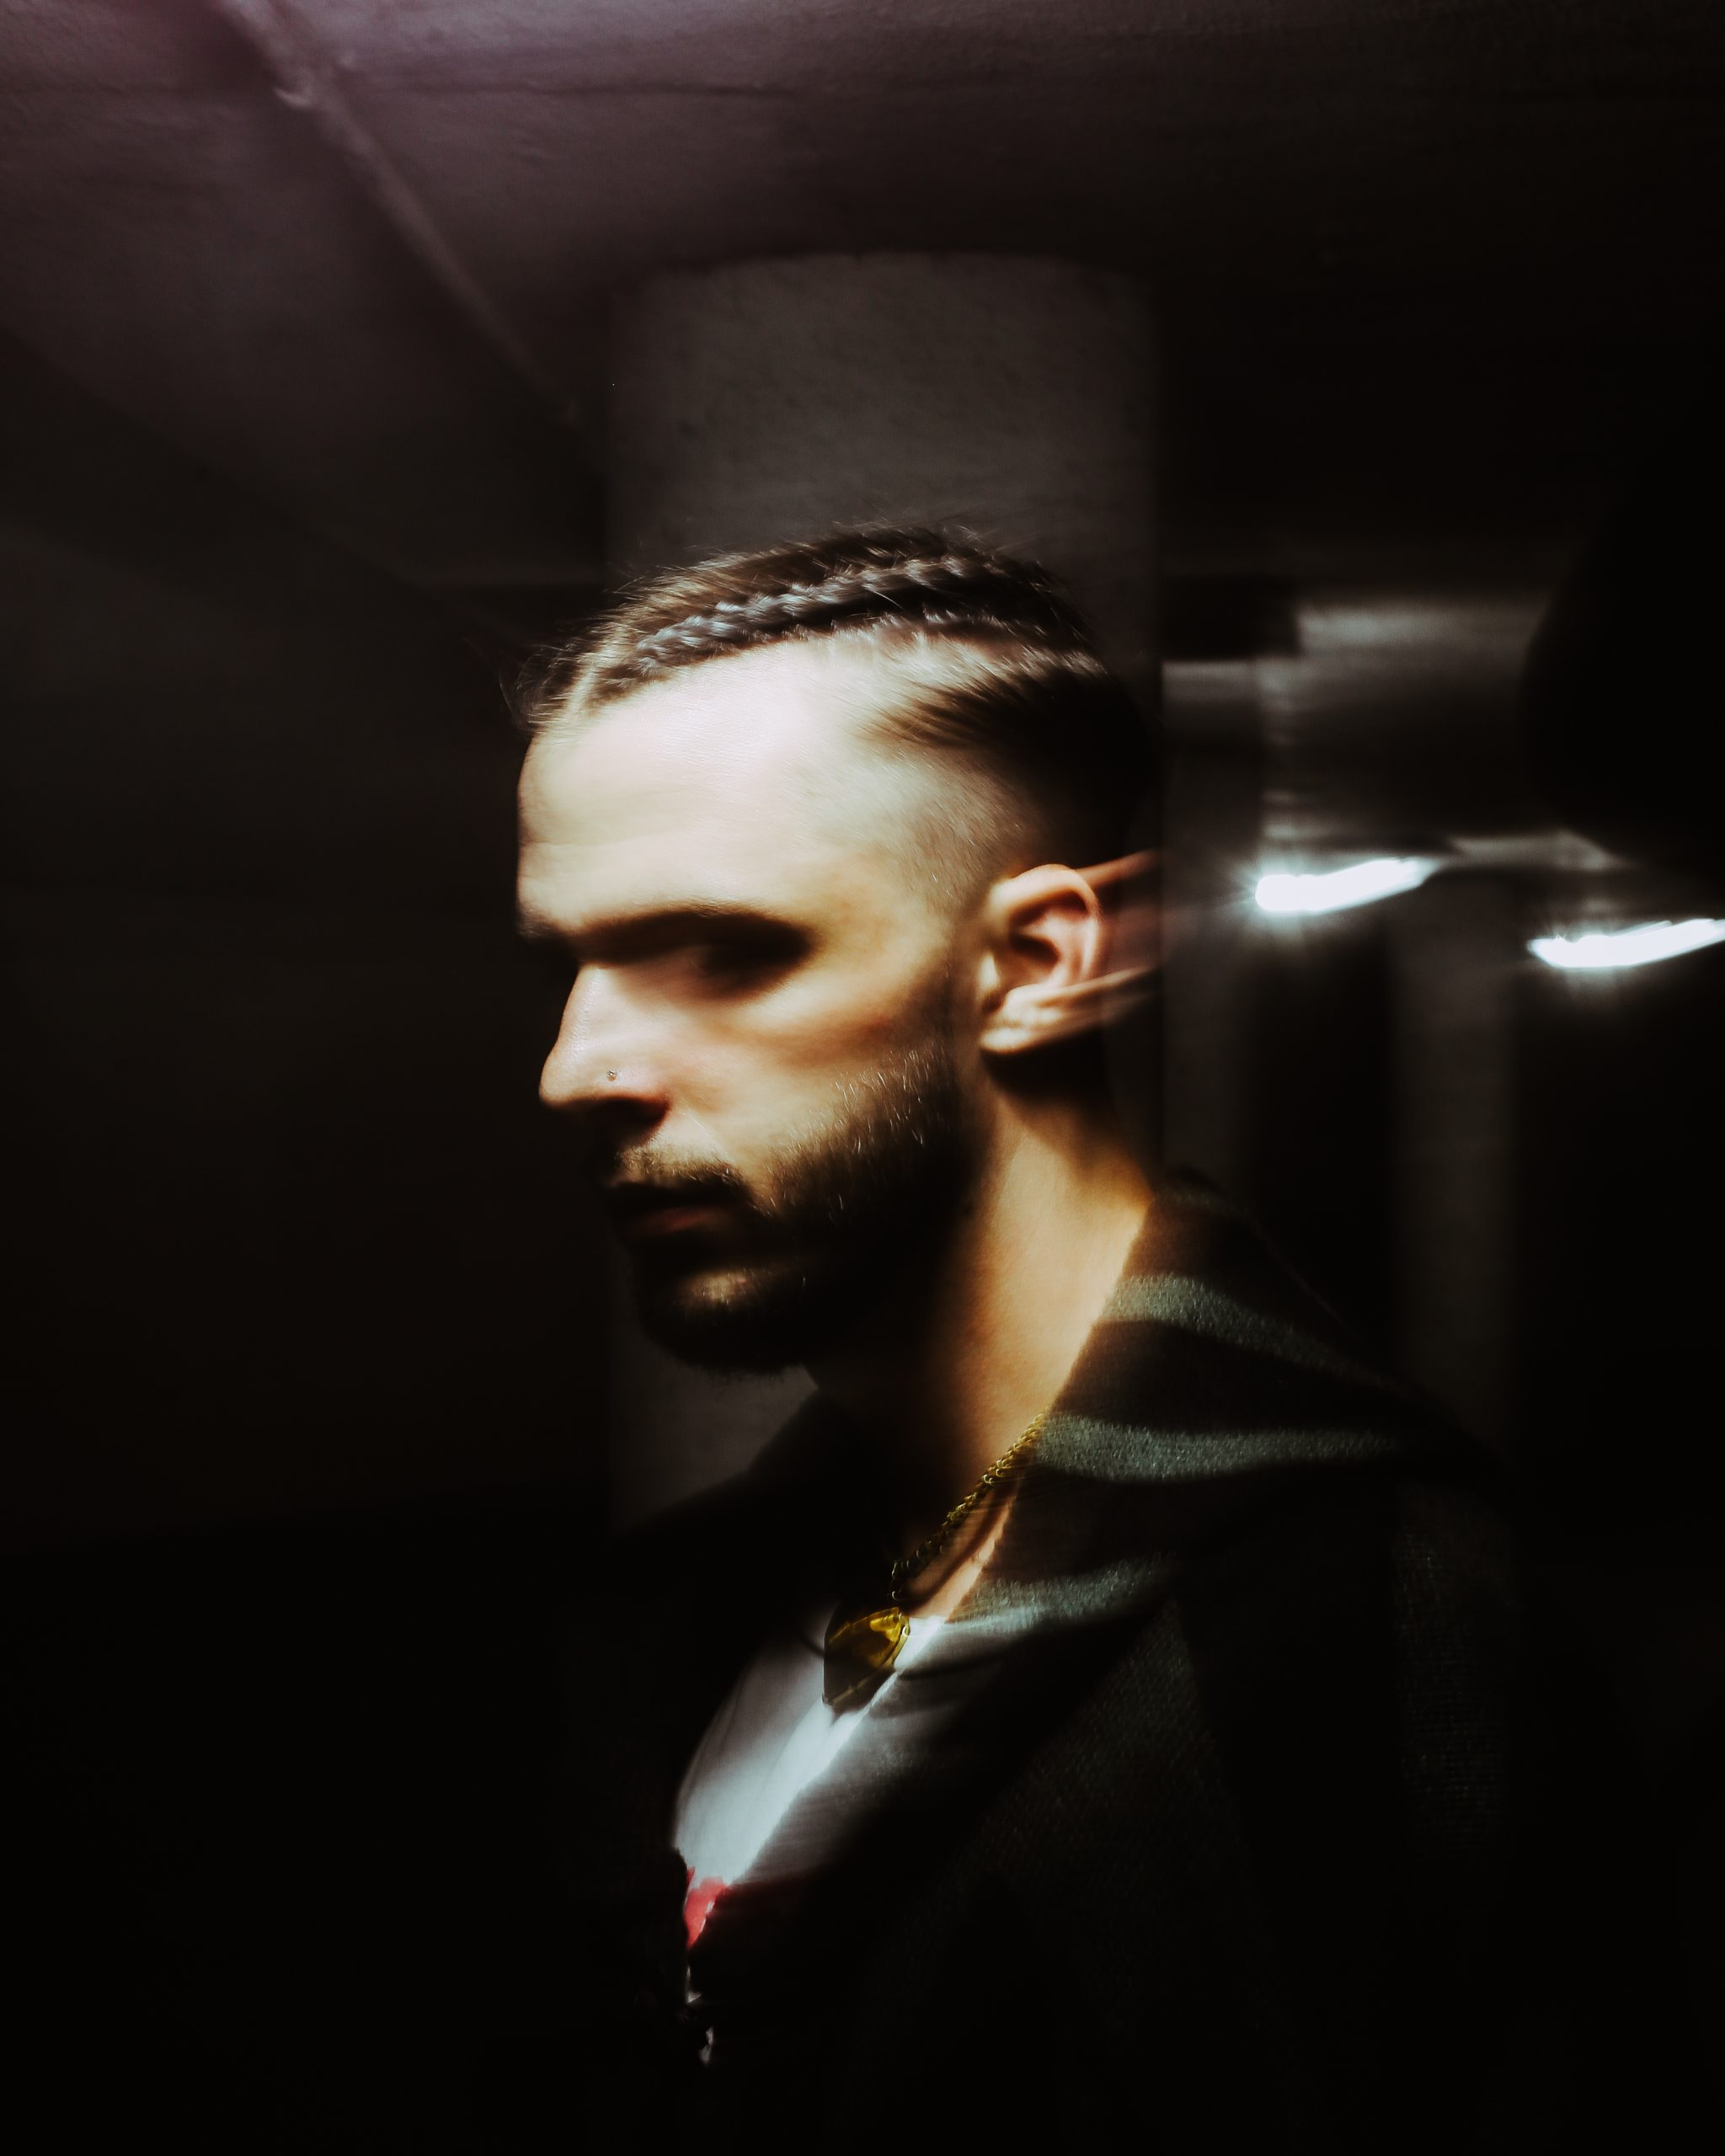 Christian Mariconda released a new hiphop song Nowadayze